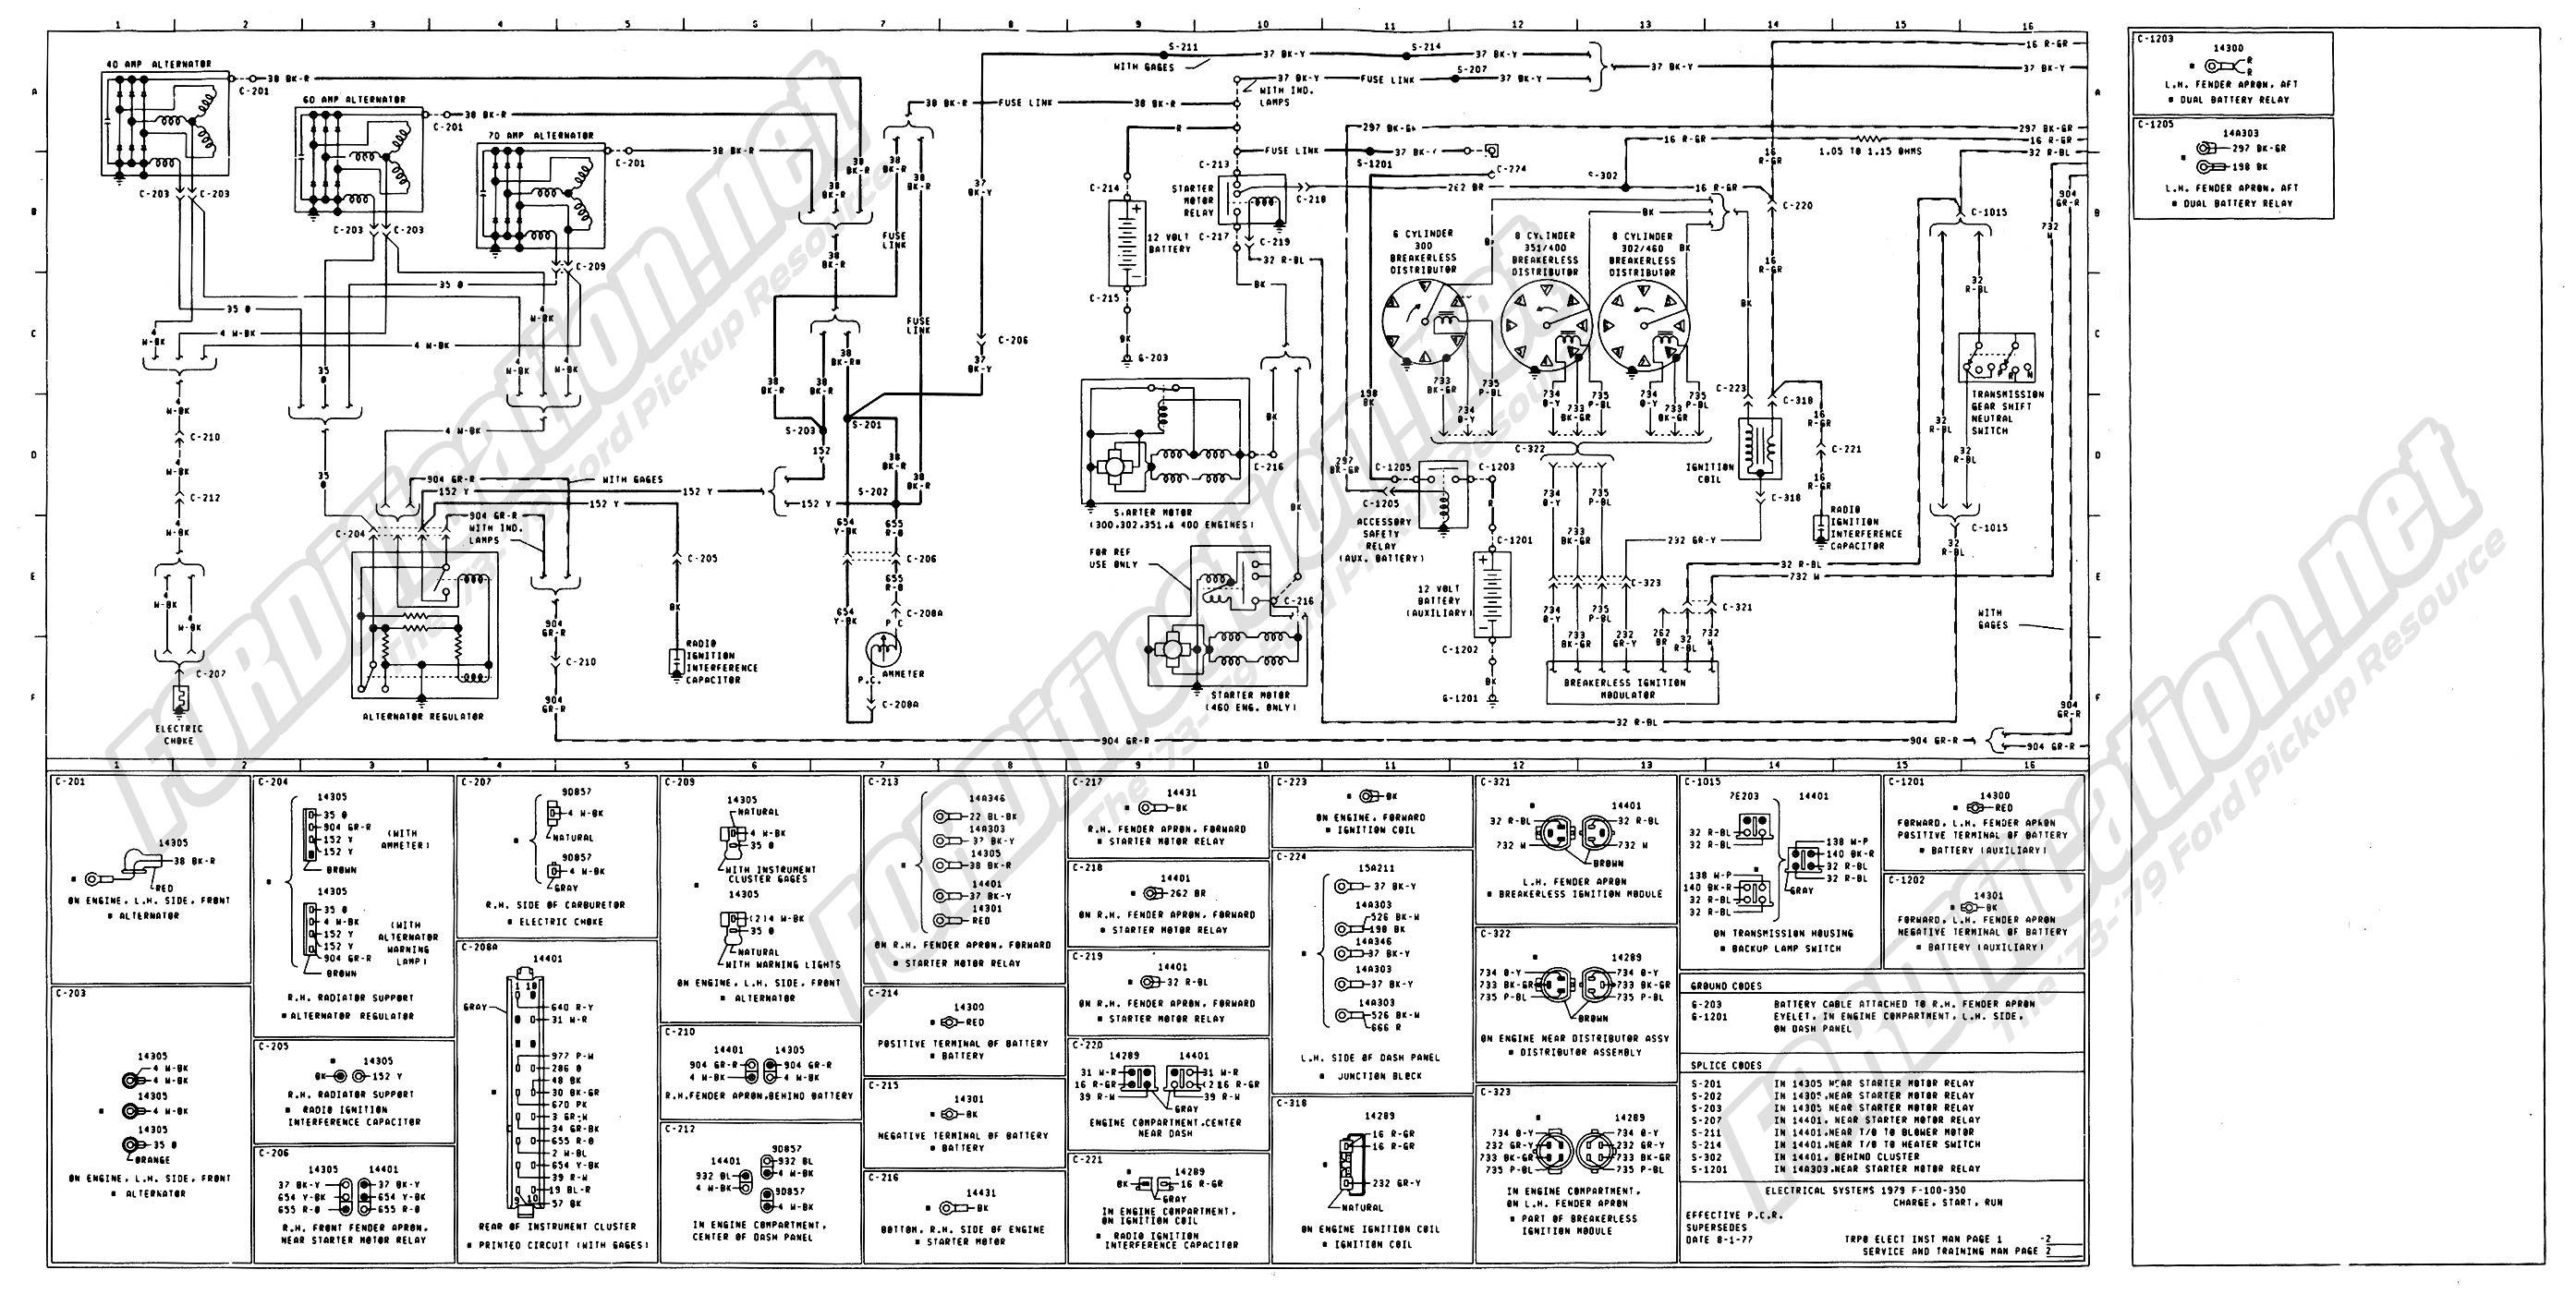 1965 Chevy Truck Distributor Wiring 1973 1979 Ford Diagrams Schematics